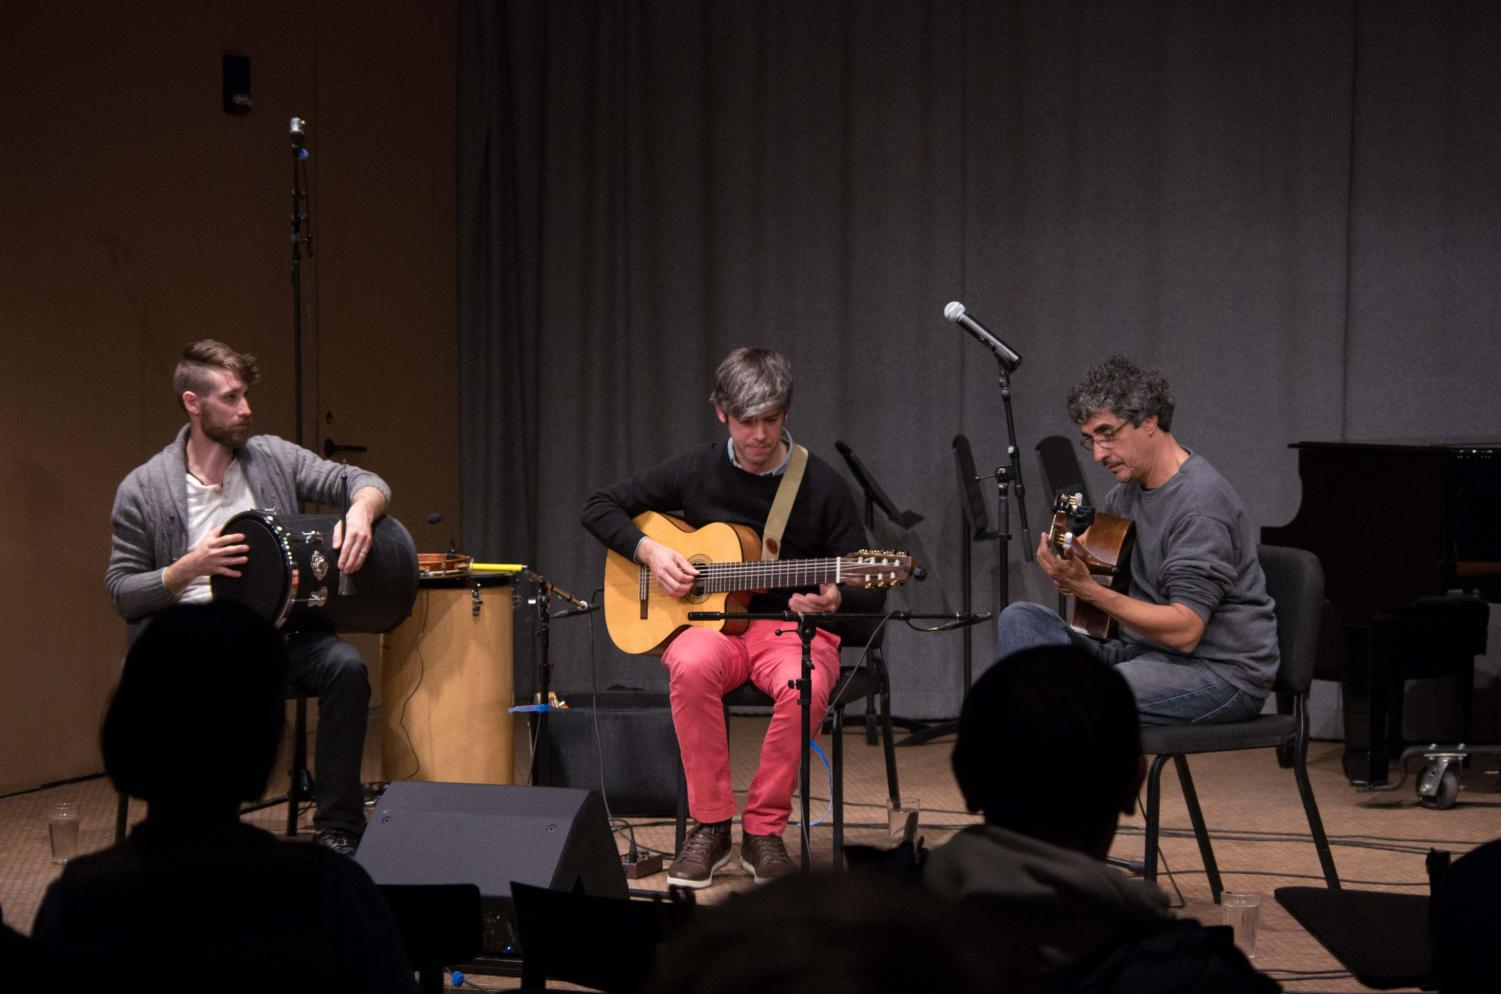 Acclaimed Brazilian guitarists Rogério Souza and Edinho Gerber, with percussionist Lucas Ashby, perform a program of Brazilian music in the Birenbaum Innovation and Performance space Tuesday night.